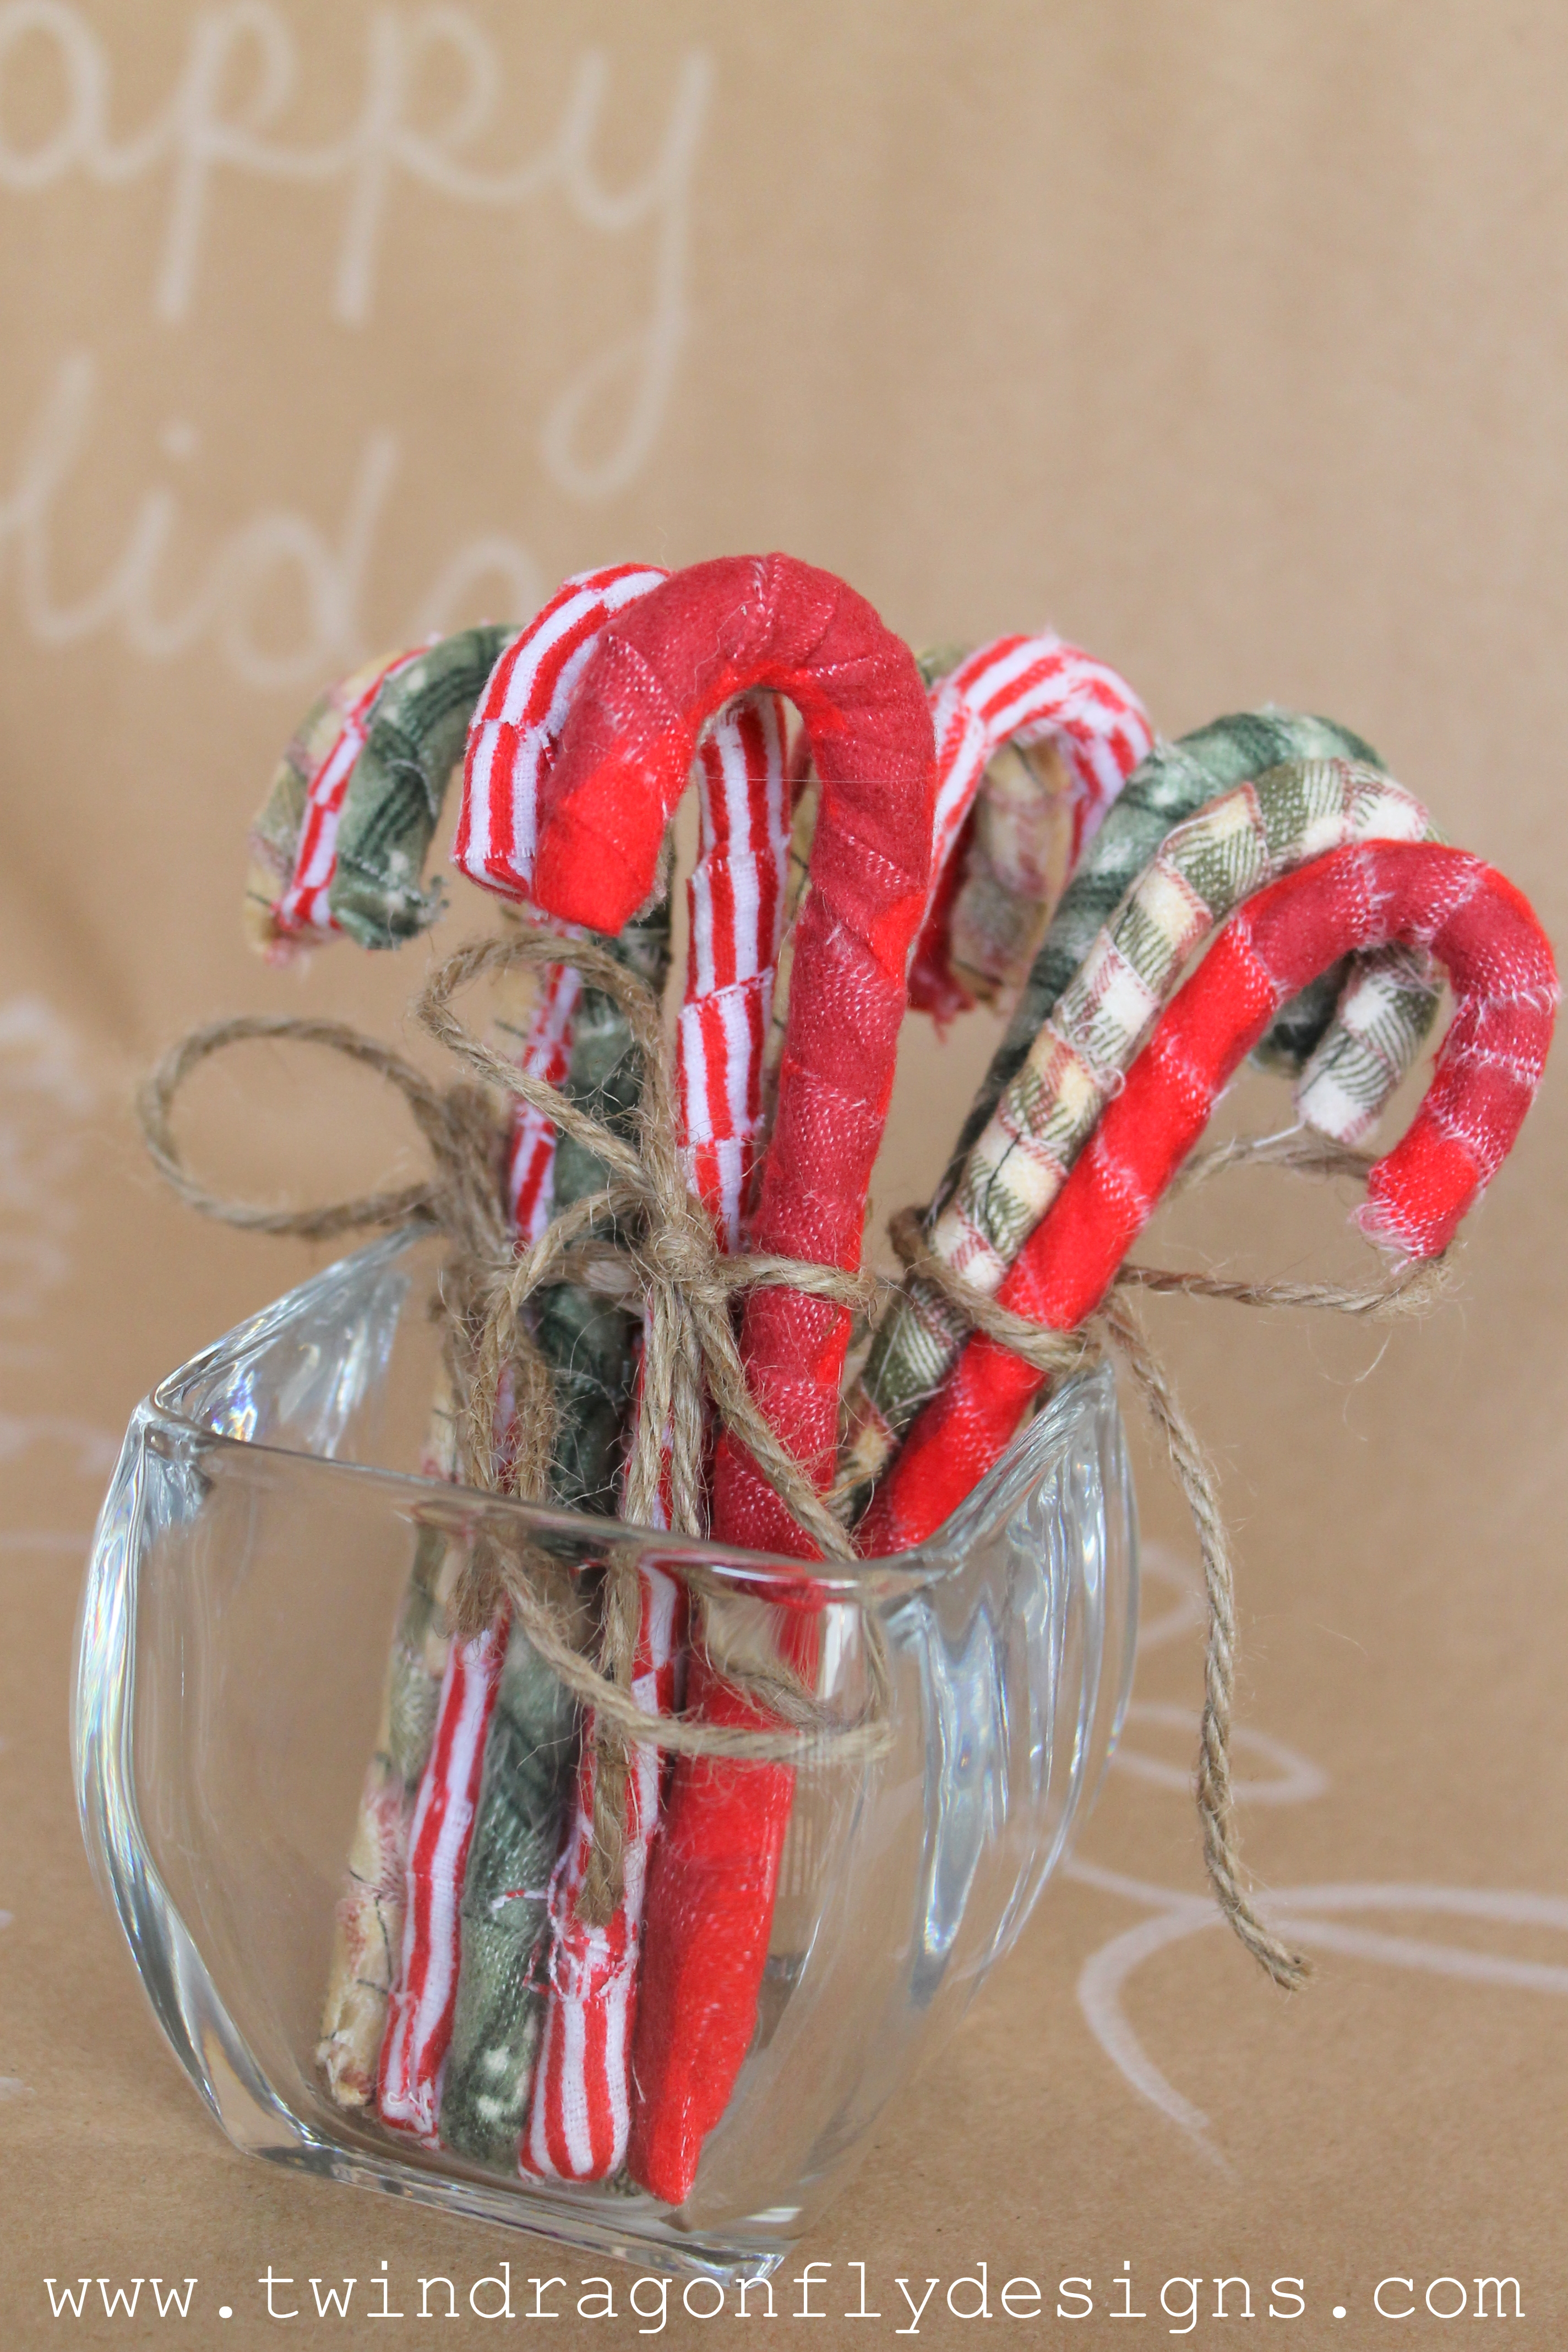 Large candy cane ornaments - Large Candy Cane Ornaments 38